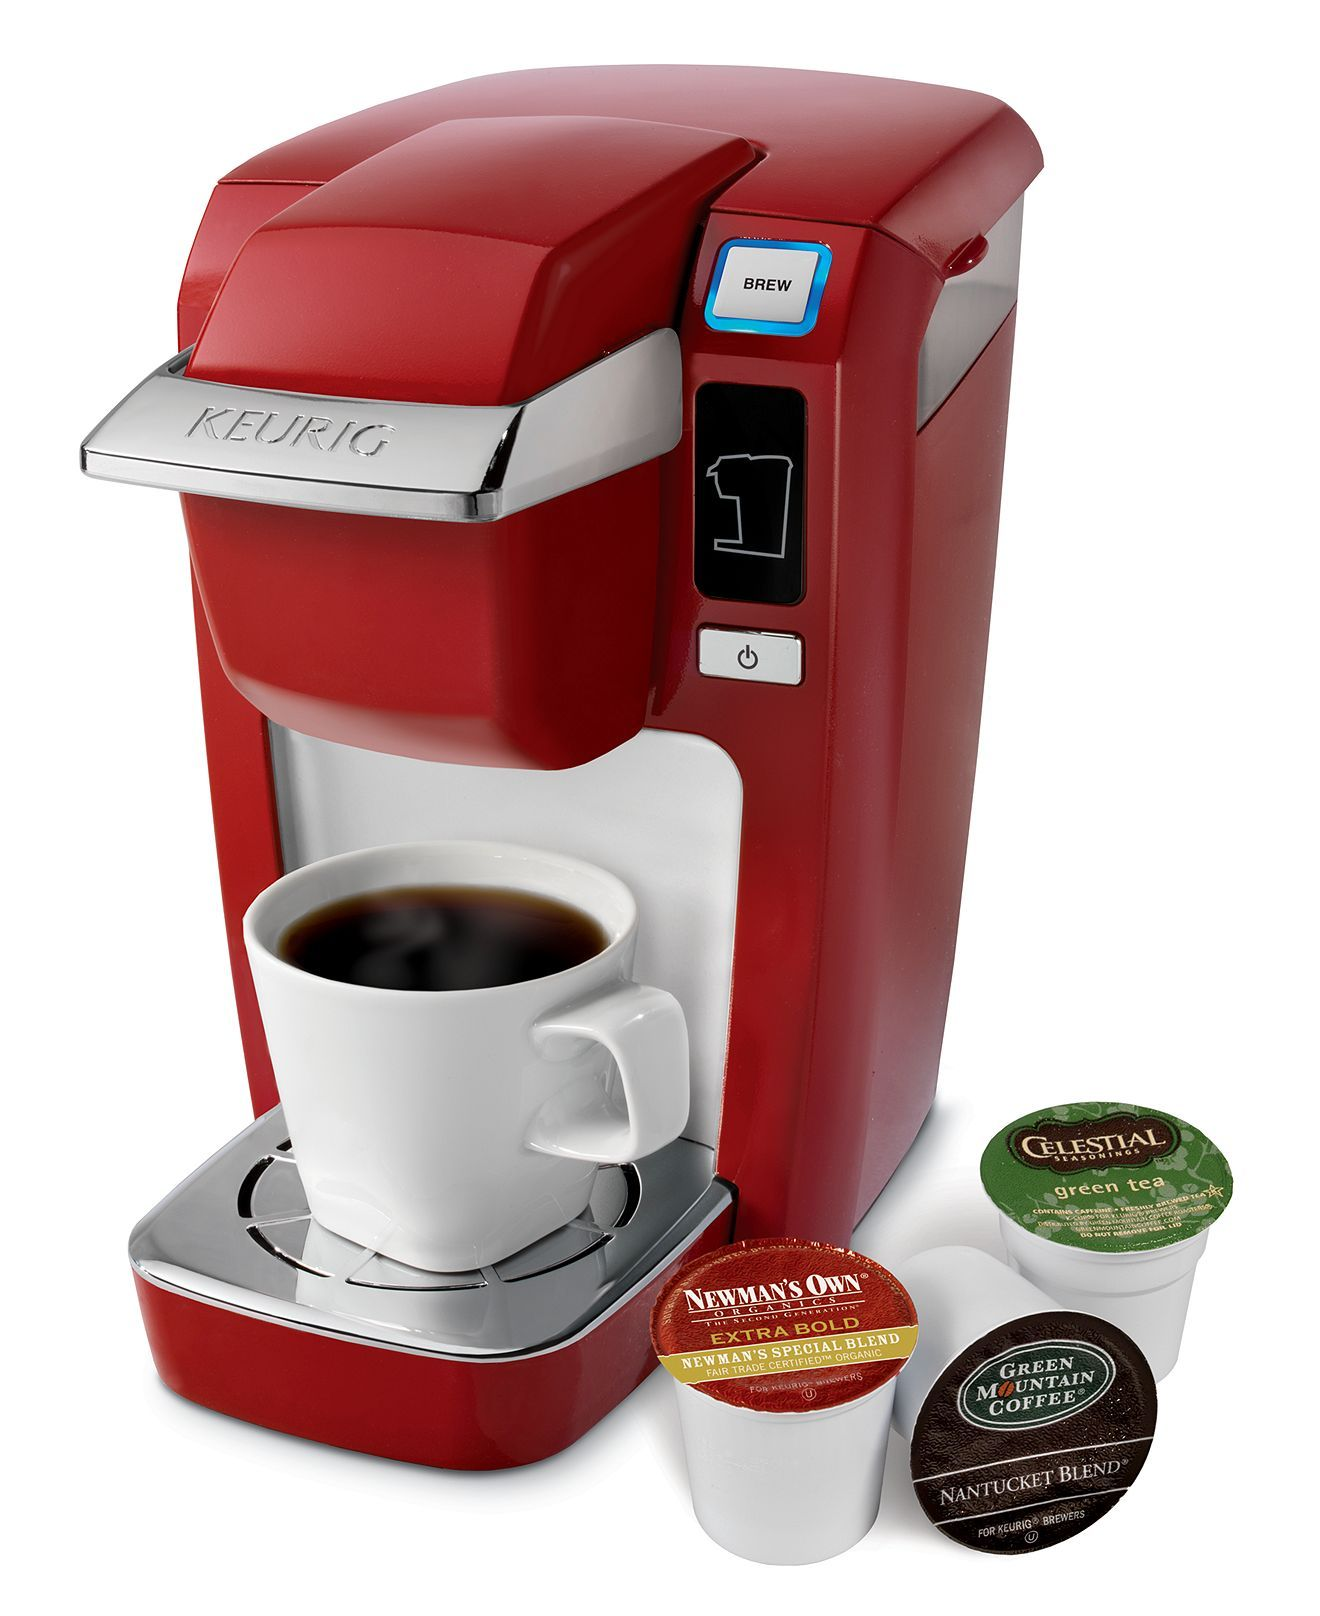 Keurig Mini Brewer Keurig Mini Keurig Coffee Makers Single Cup Coffee Maker